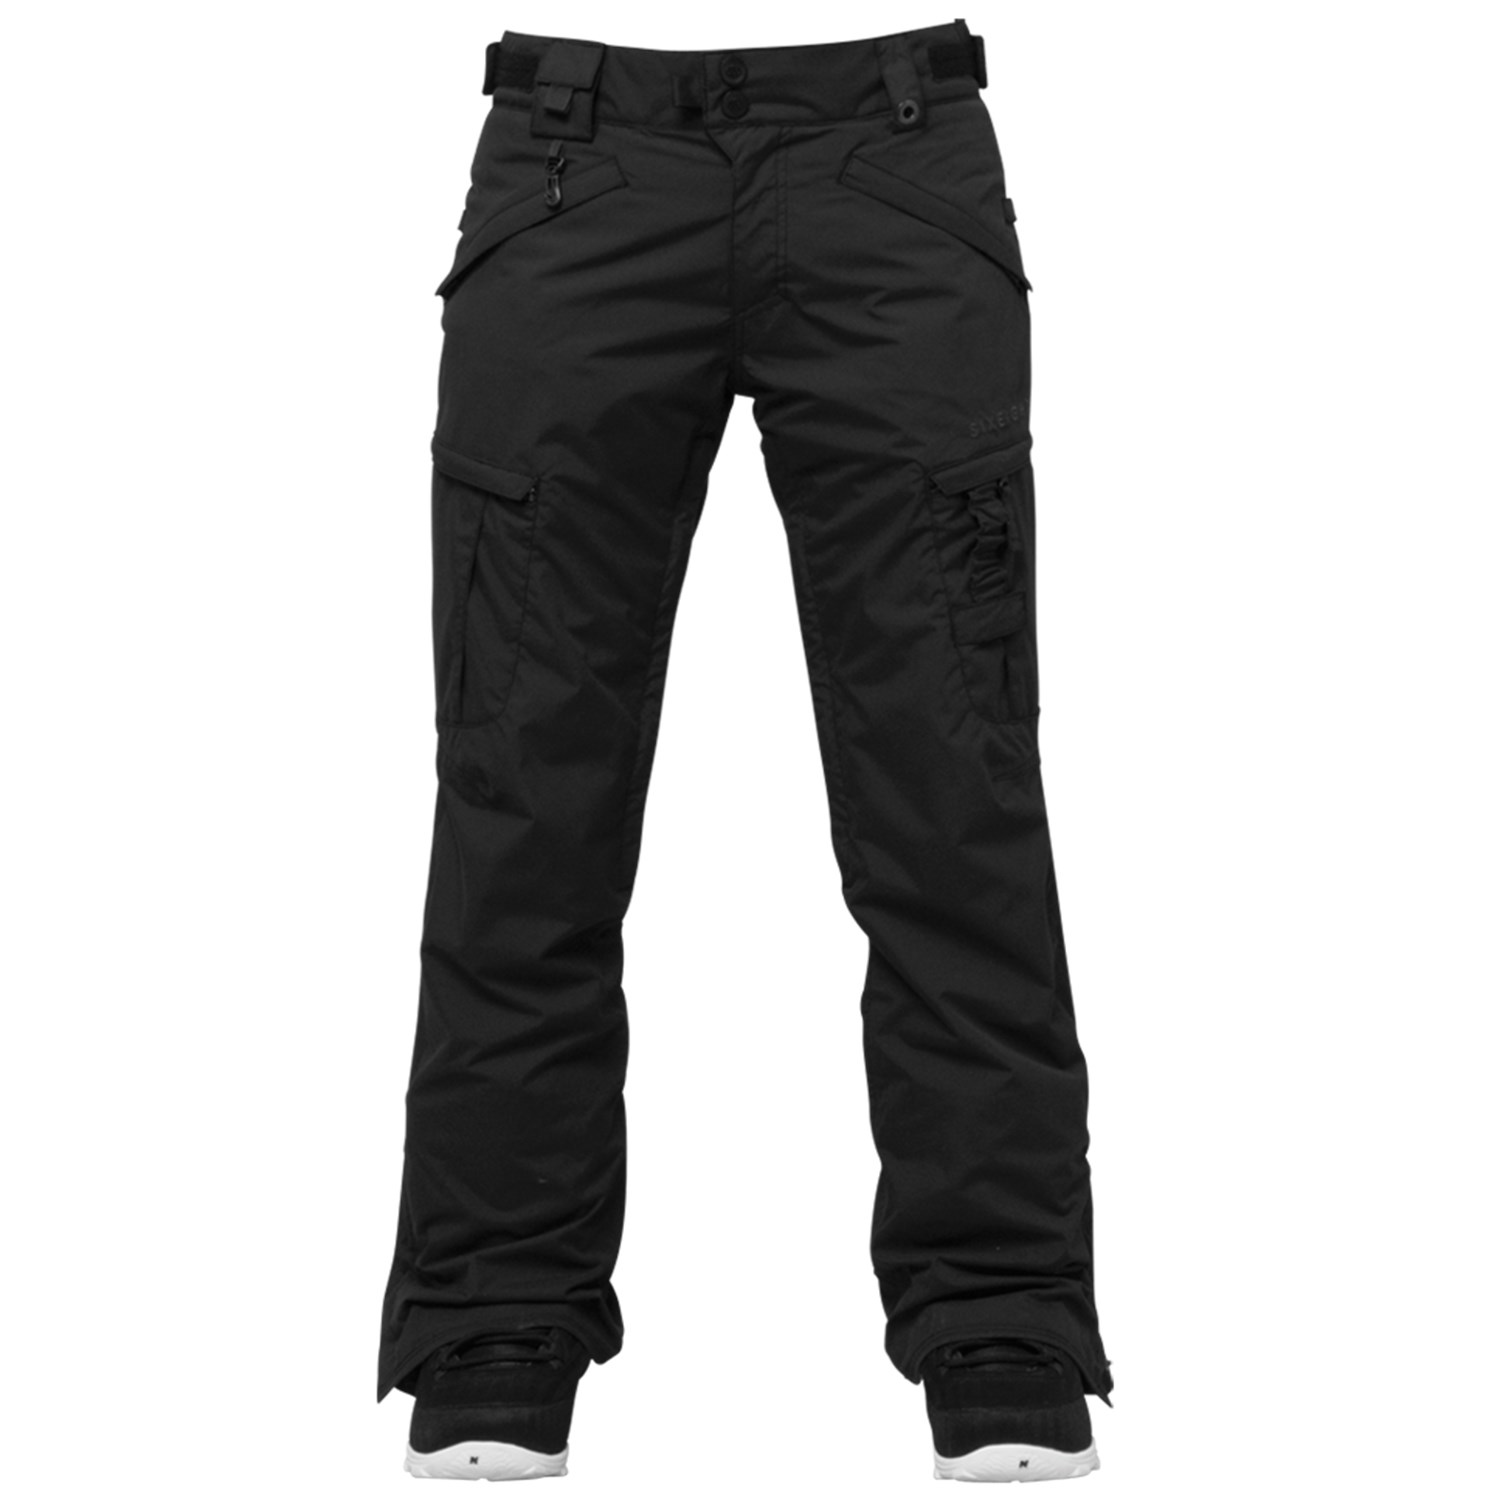 686 Authentic Smarty Cargo Pants - Tall - Women's | evo outlet